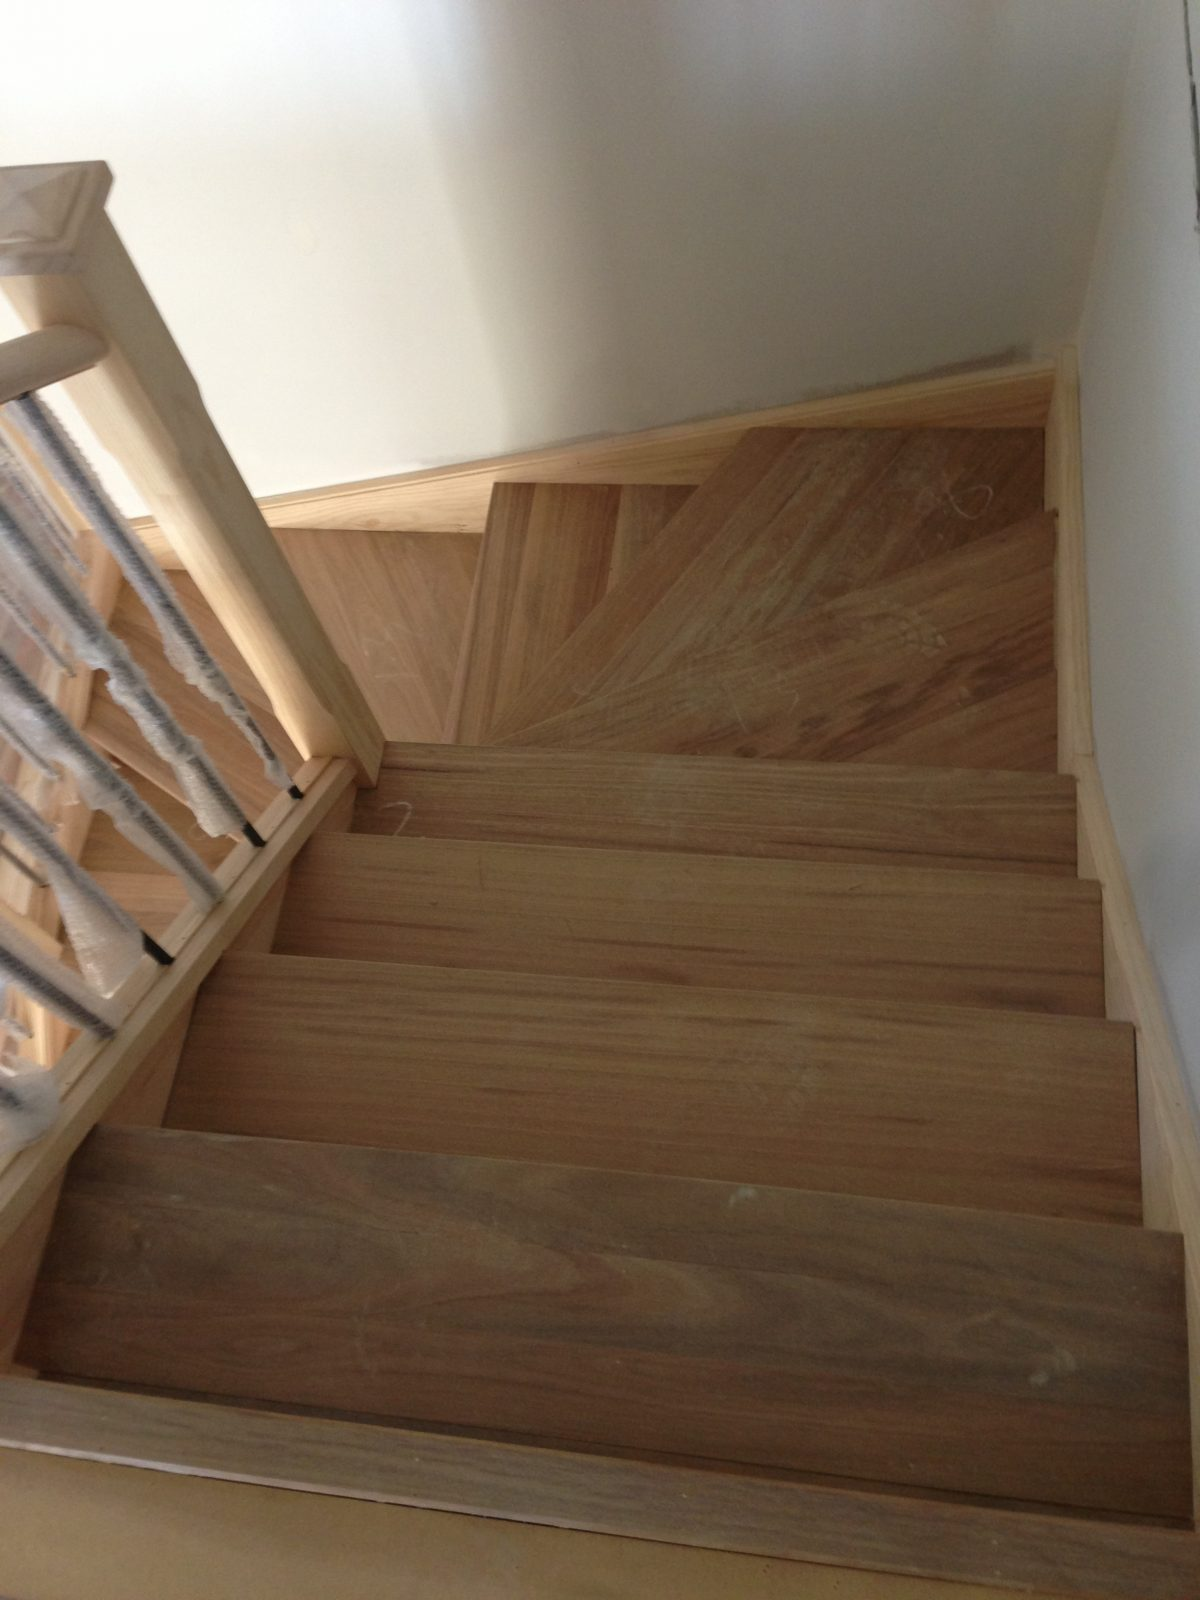 Harrington Park renovation of staircase in spotted gum solid treads and risers and timber floorboards by Timber Floors Pty Ltd